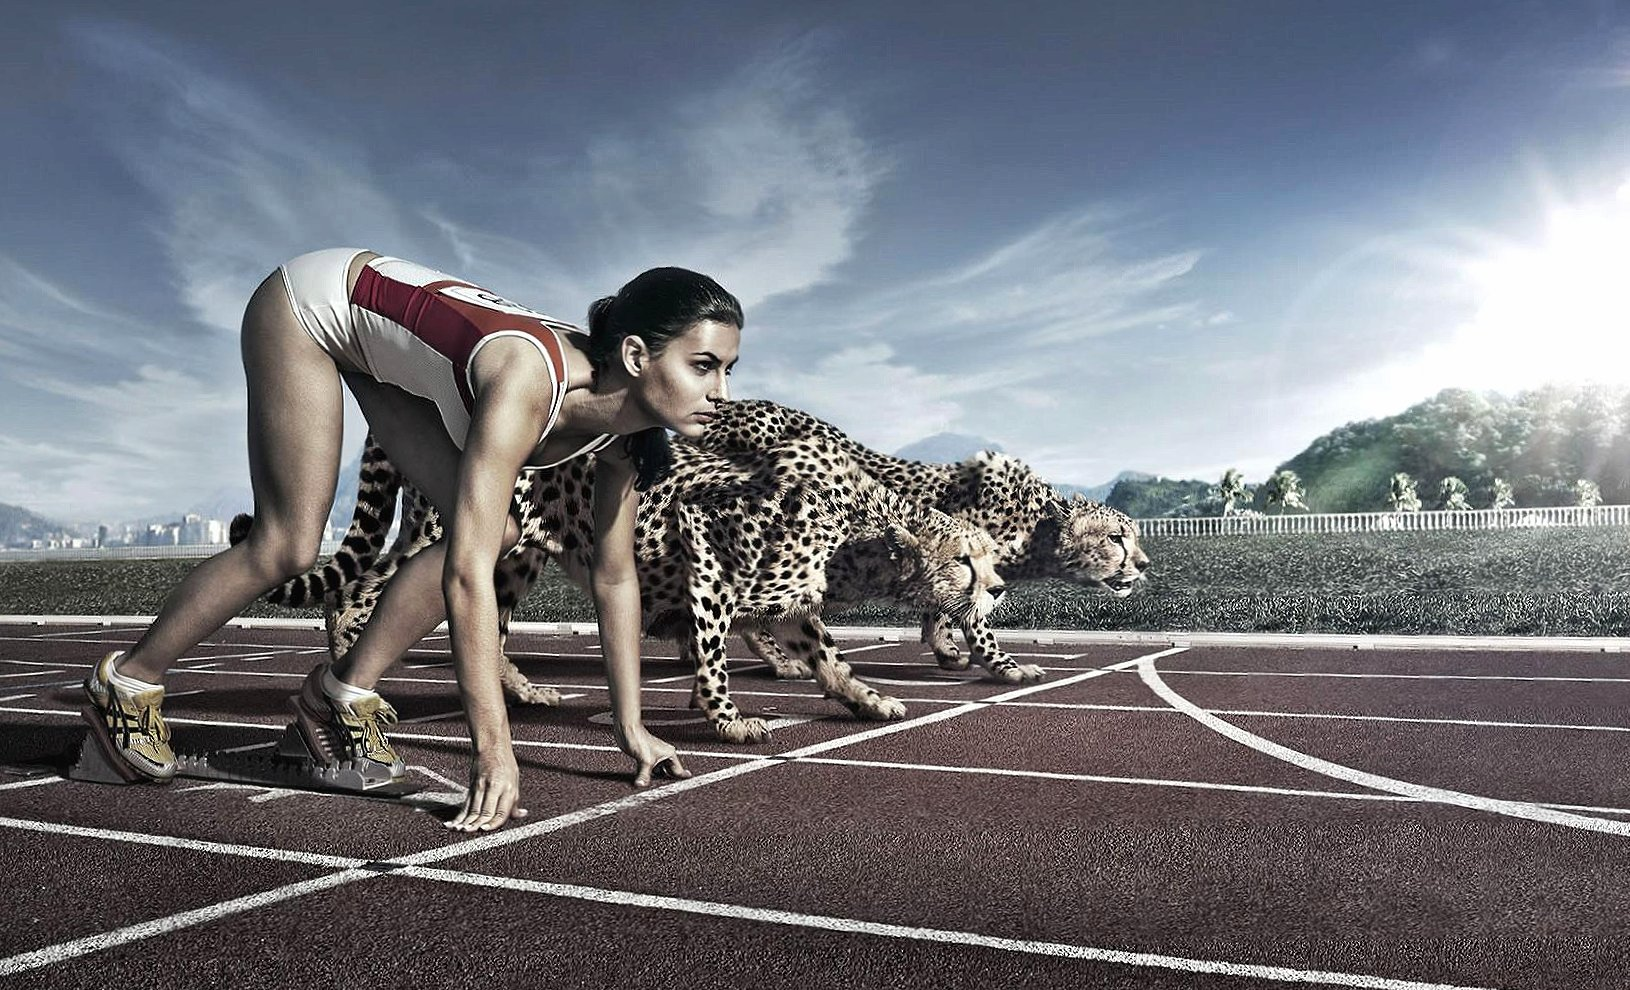 Cheetahs vs woman digital art wallpapers HD quality